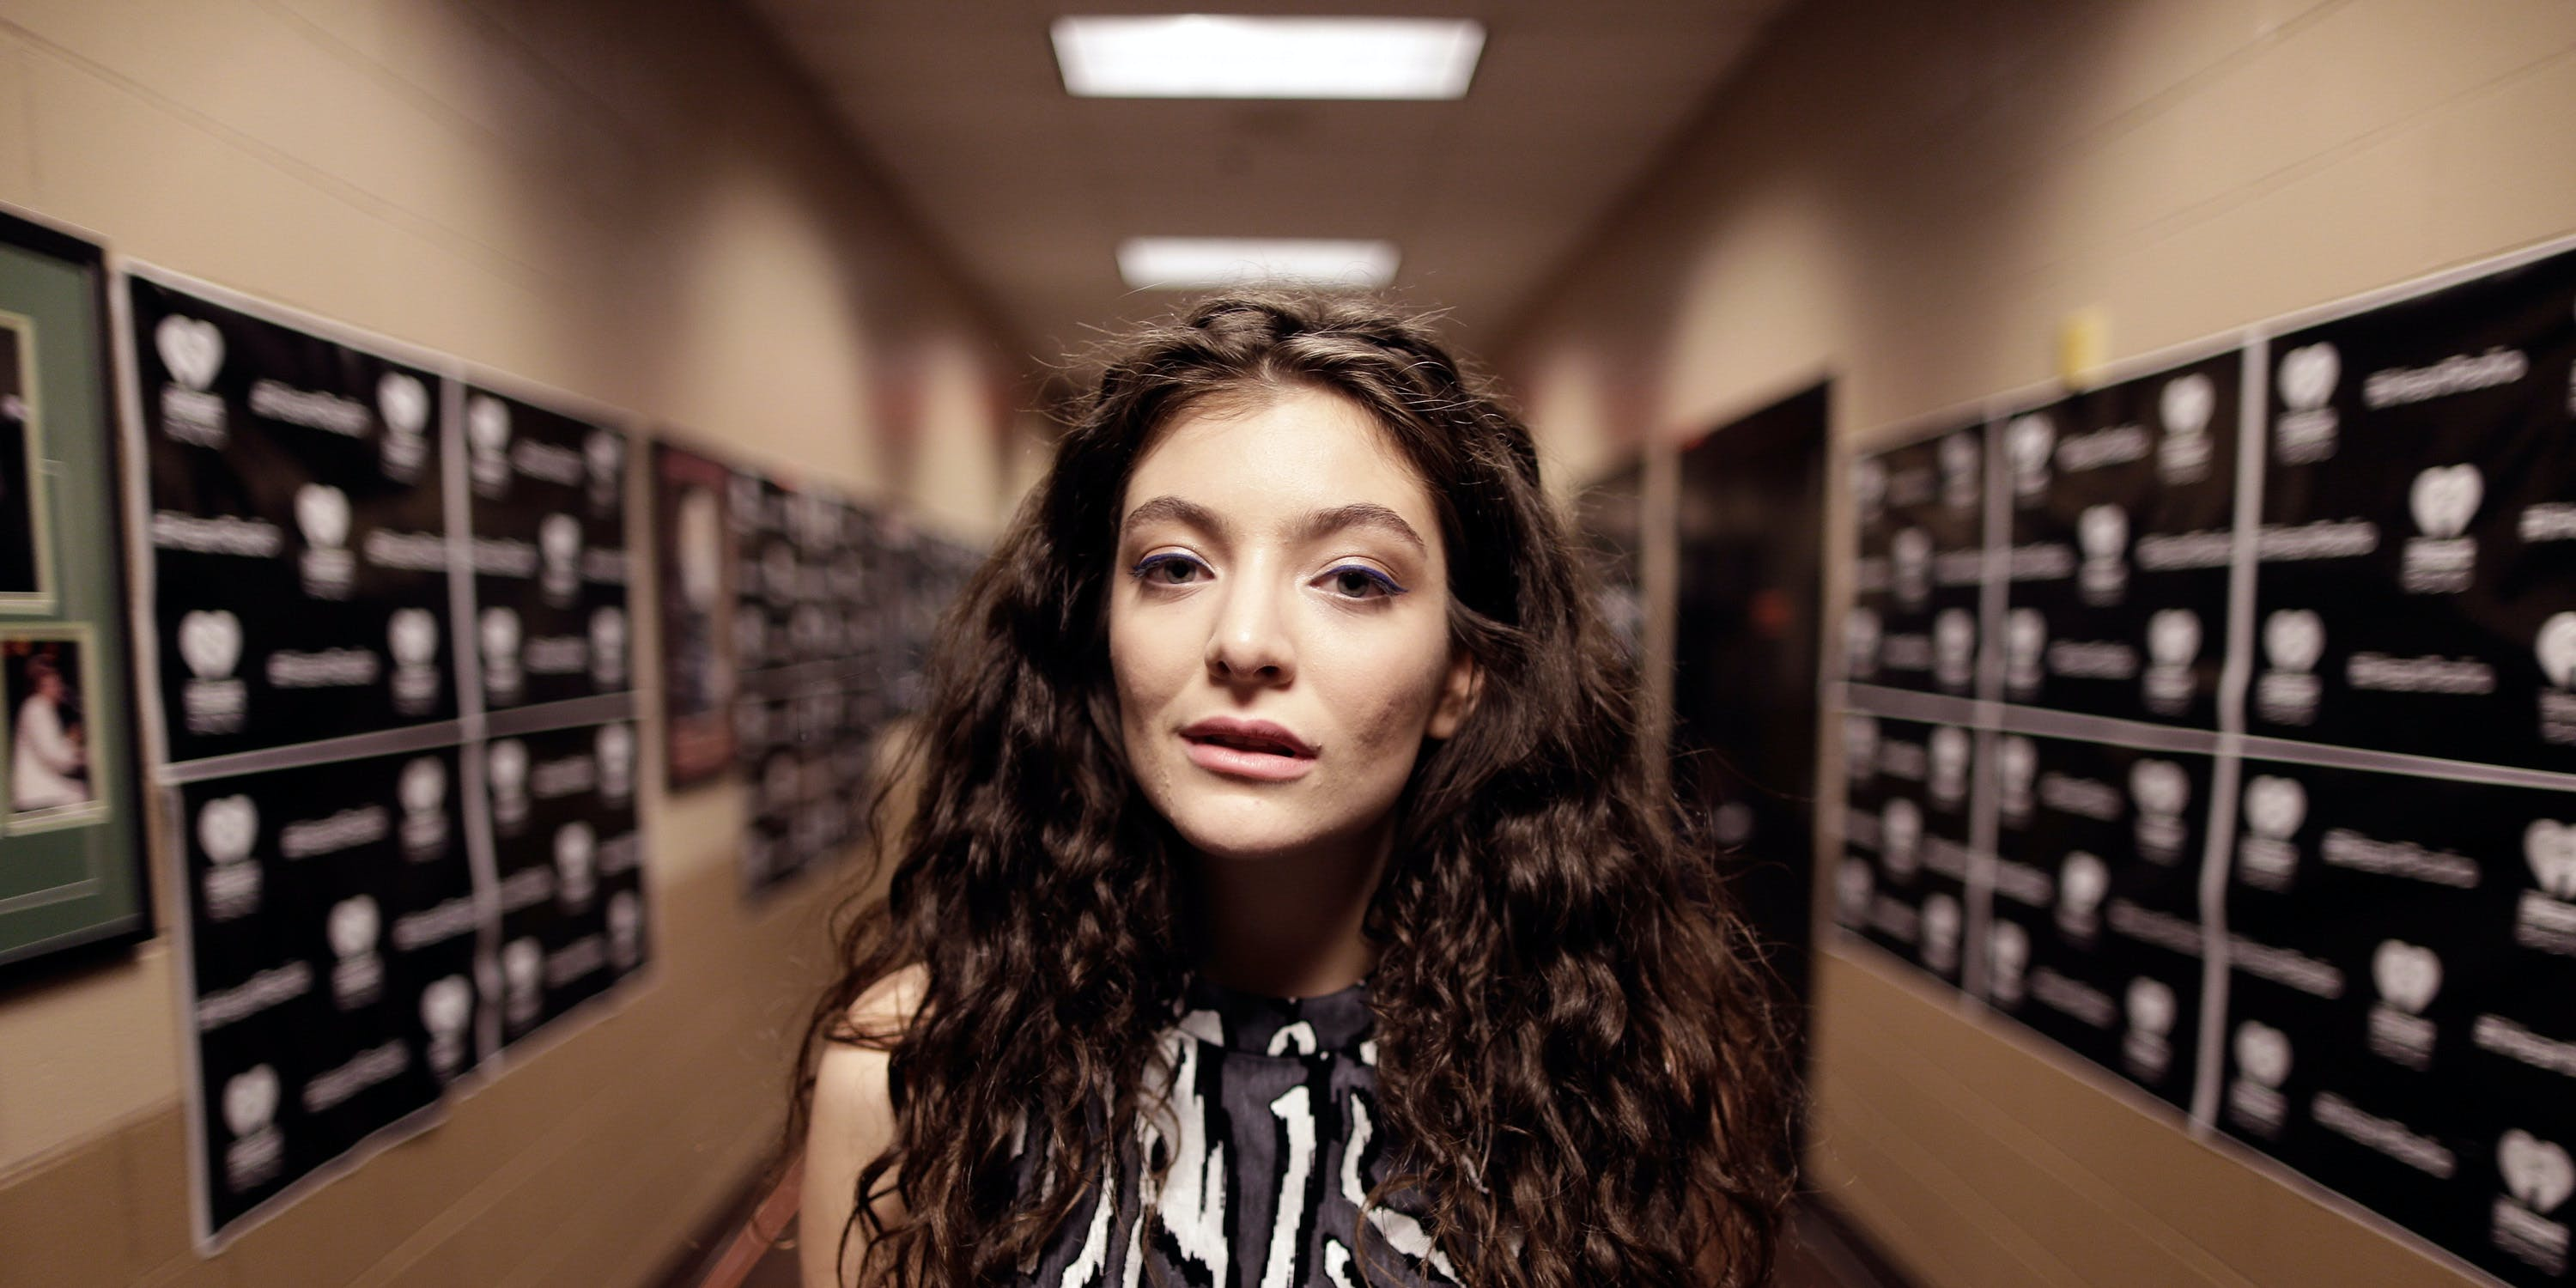 LAS VEGAS, NV - SEPTEMBER 20:  Recording artist Lorde attends the 2014 iHeartRadio Music Festival at the MGM Grand Garden Arena on September 20, 2014 in Las Vegas, Nevada.  (Photo by Isaac Brekken/Getty Images for iHeartMedia)